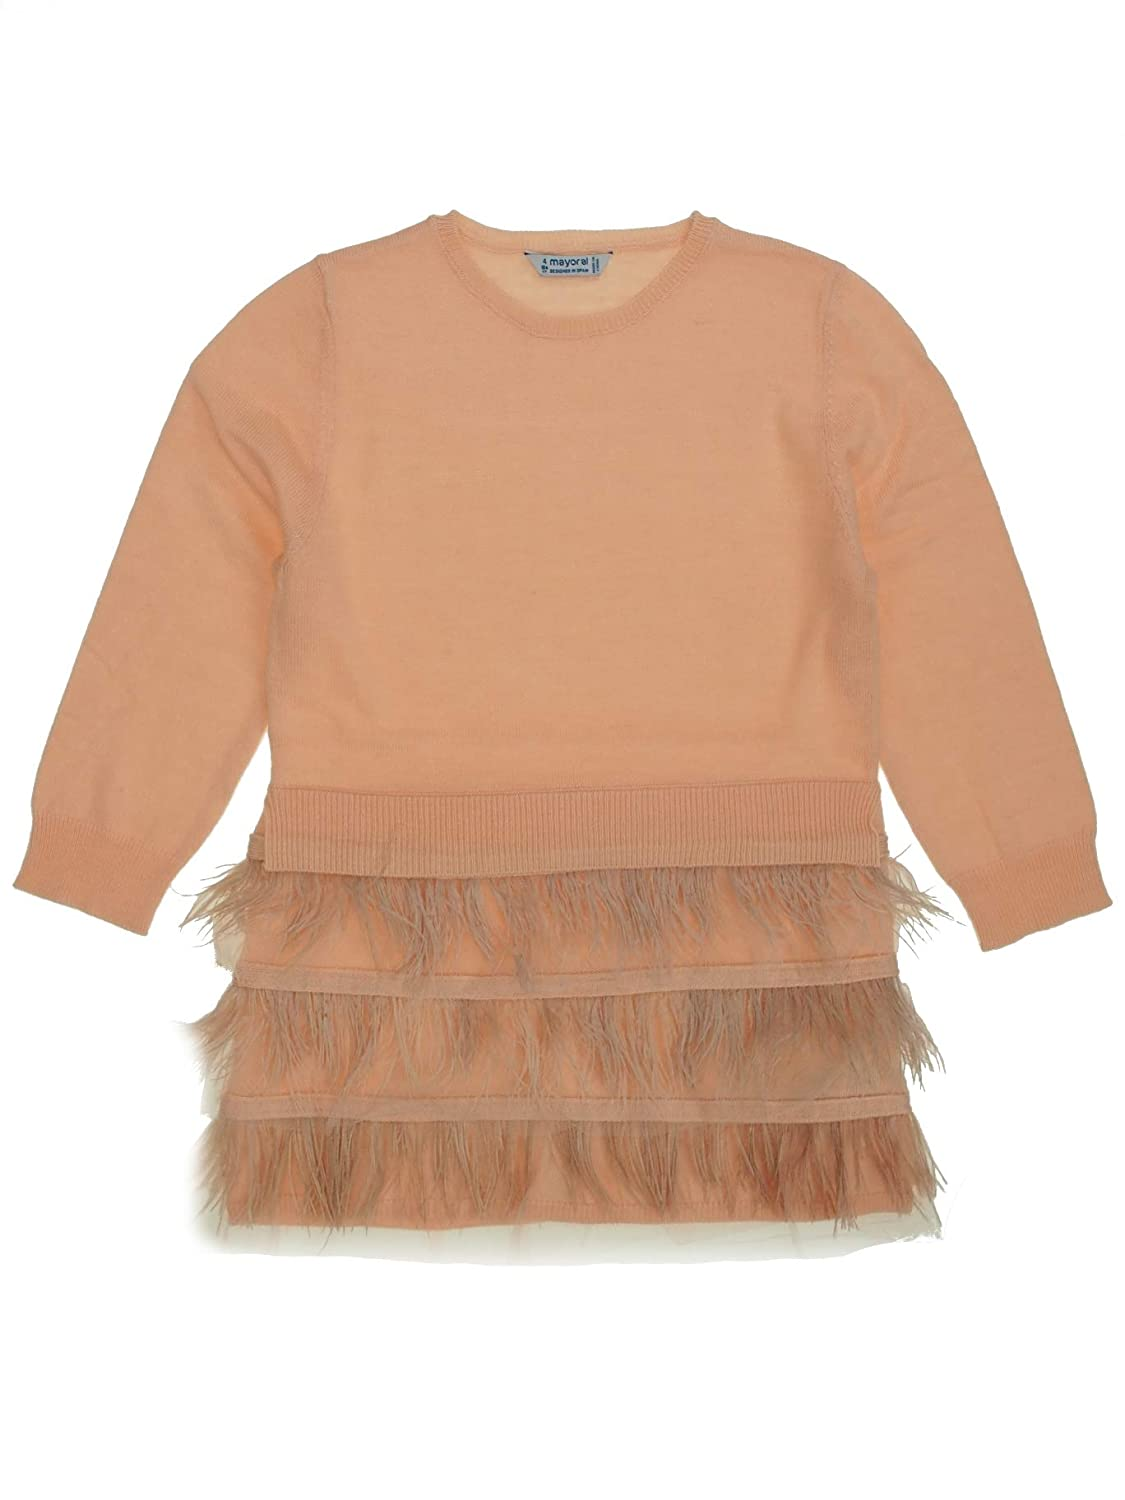 Mayoral - Robe Tricot Plumes pour Fille - 4930, Nude